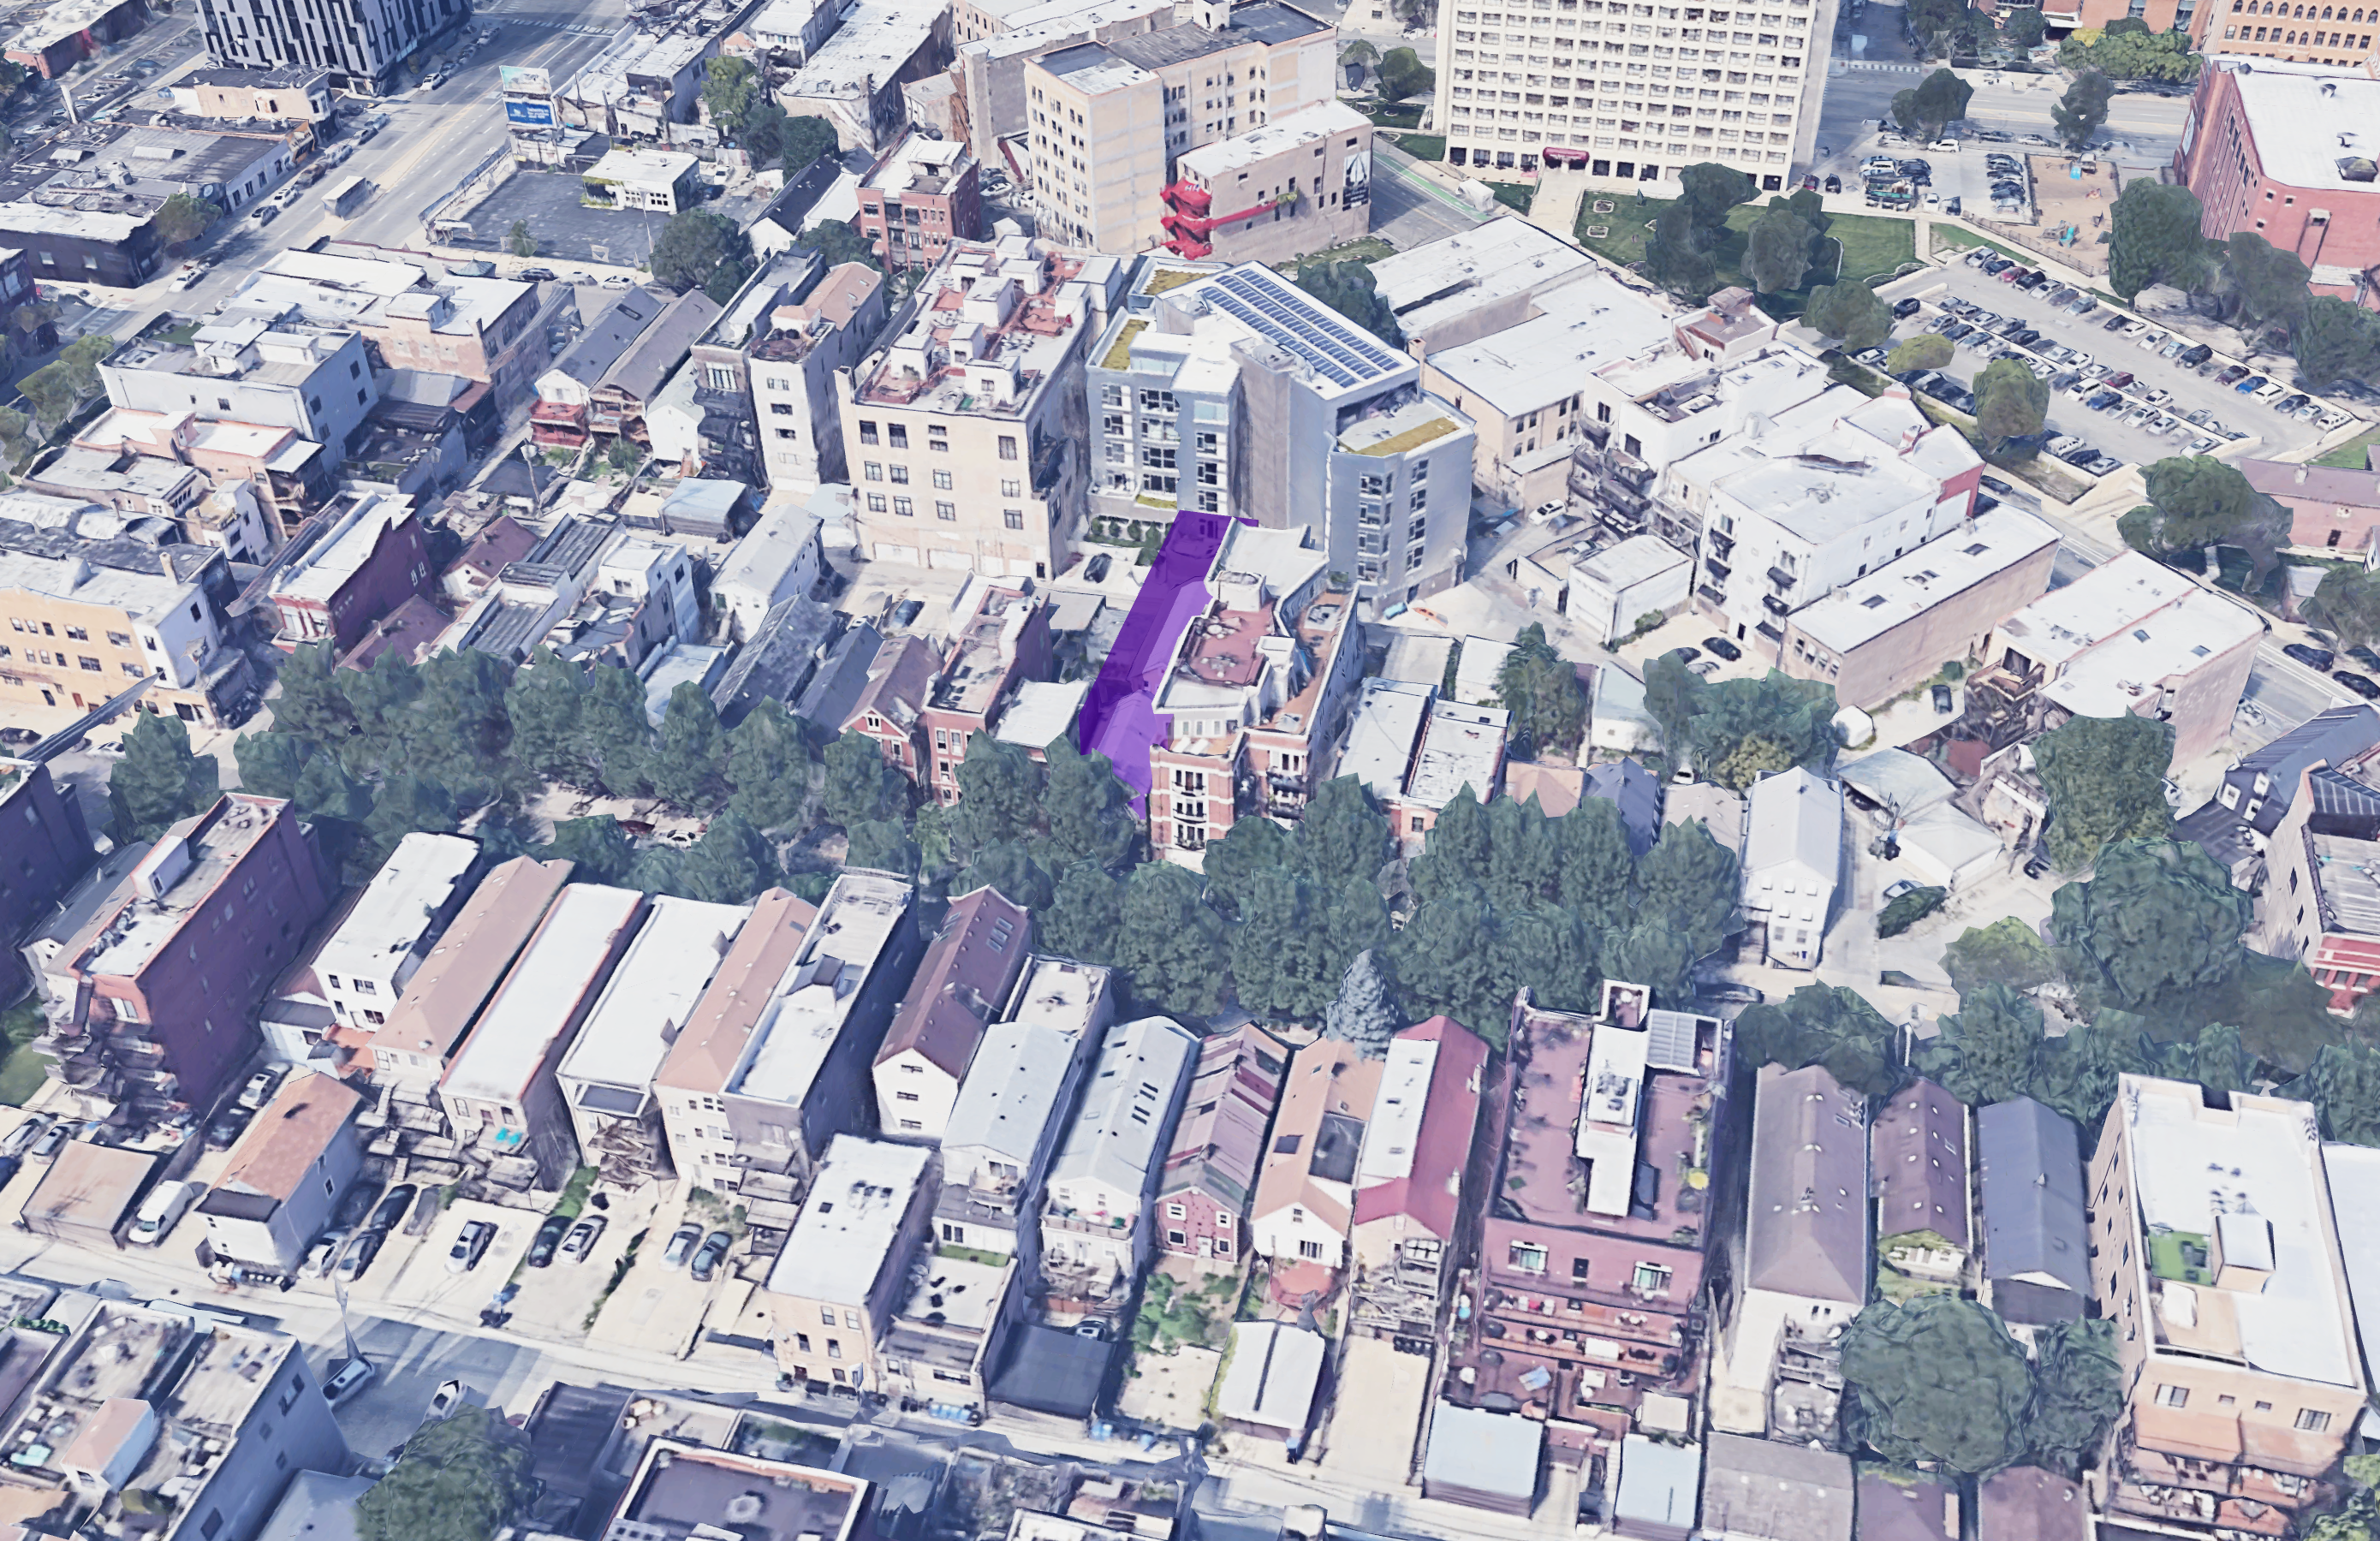 1518 W Thomas street, highlighted in purple